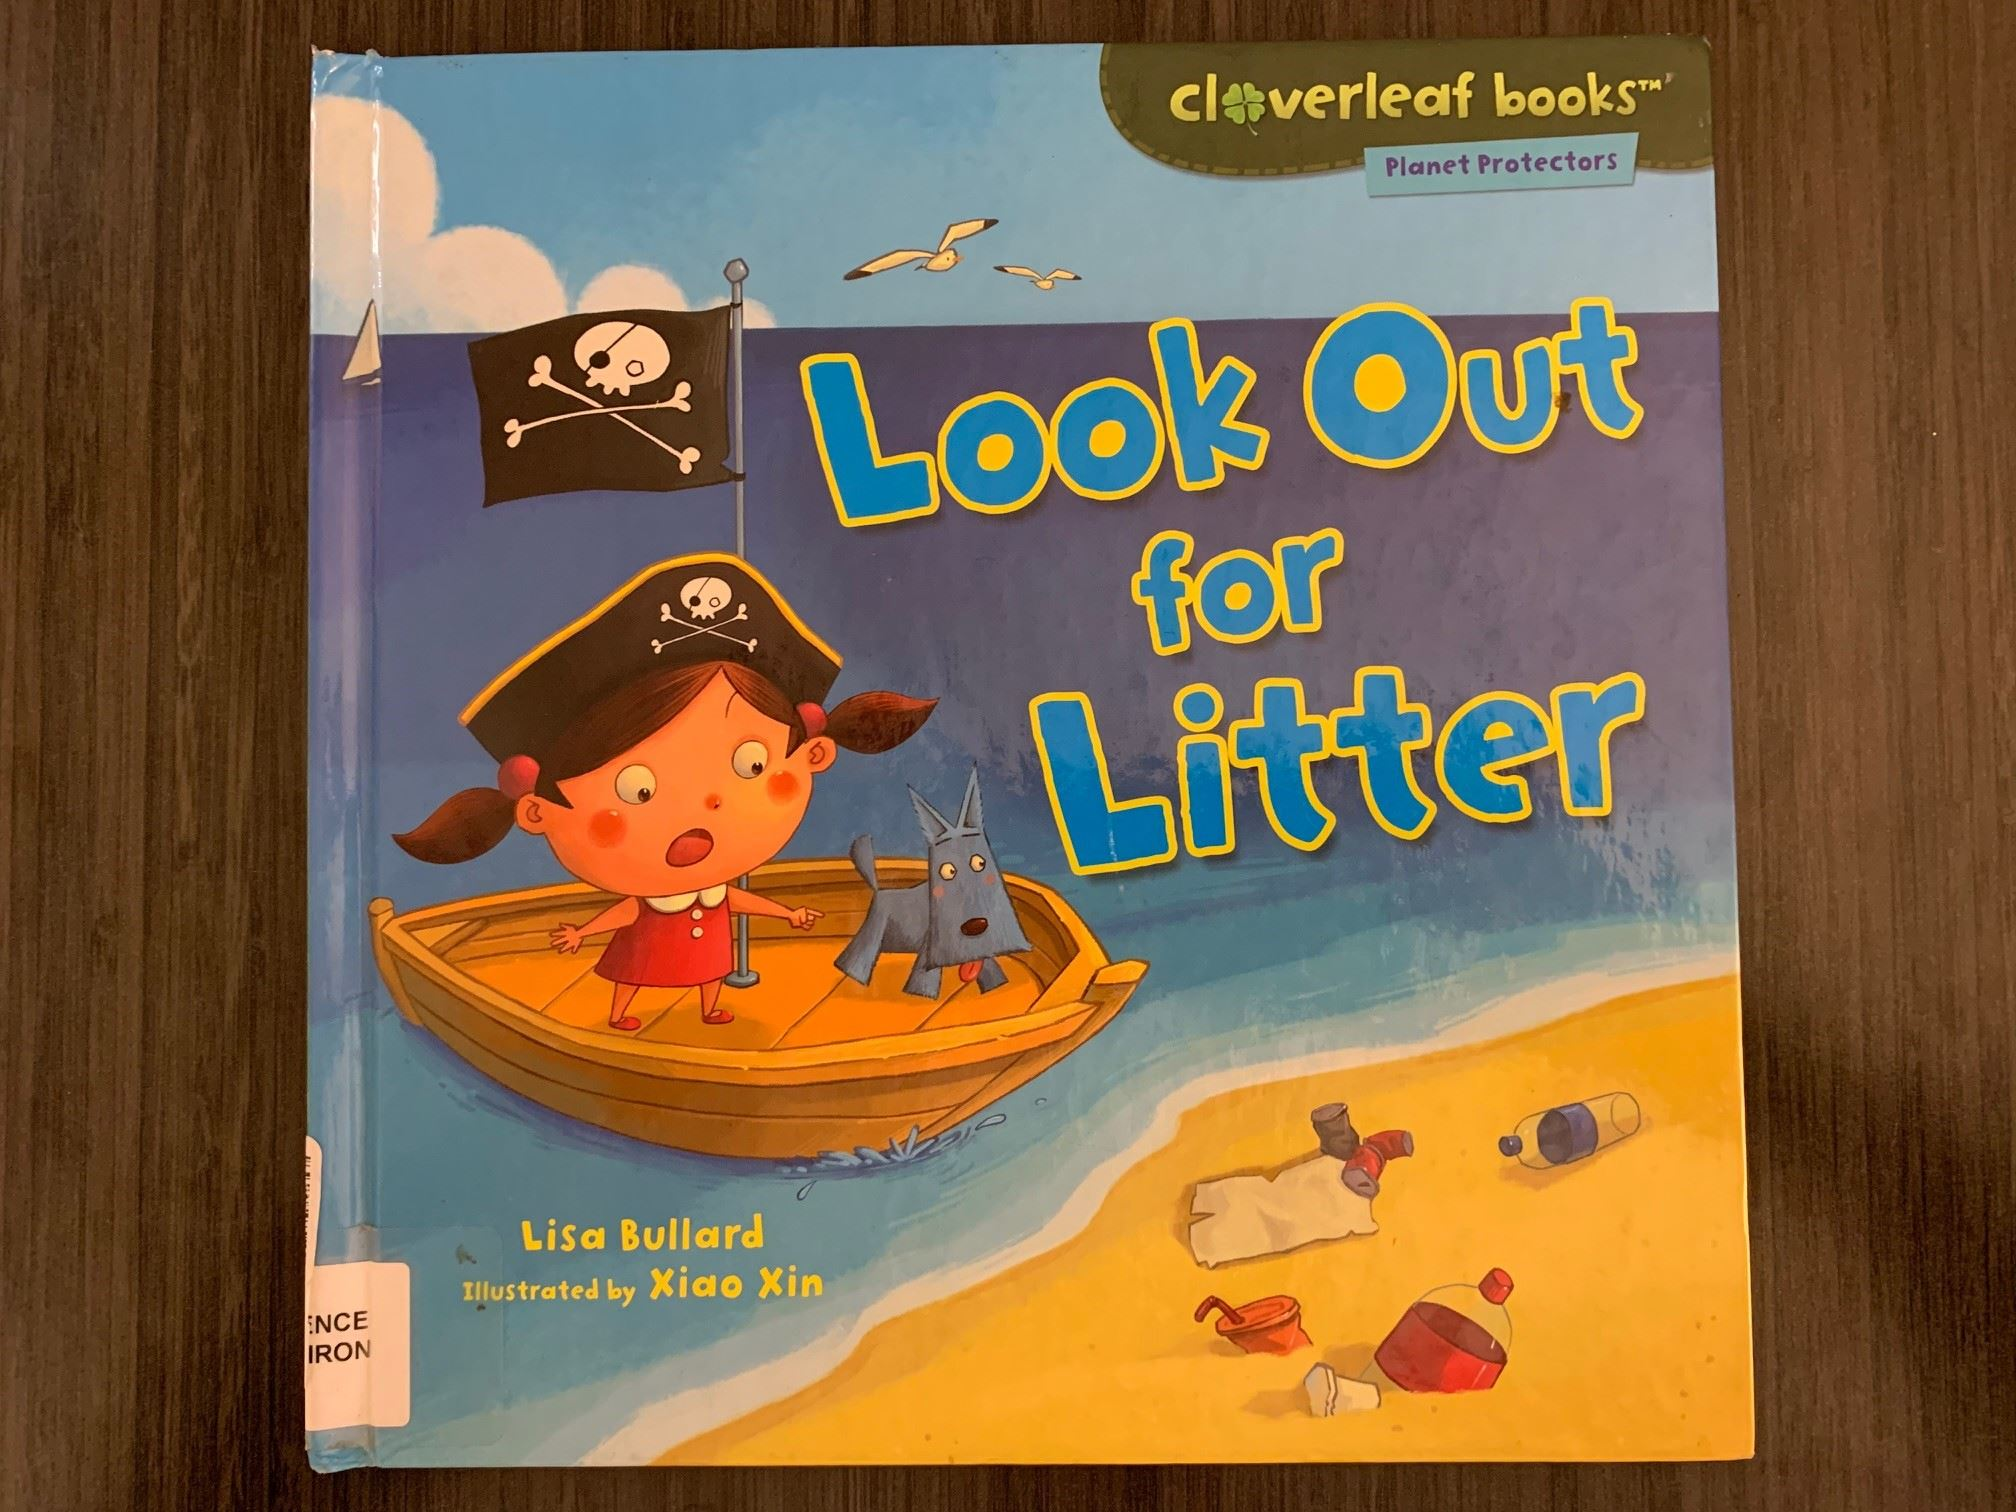 Book 33 - Look Out For Litter